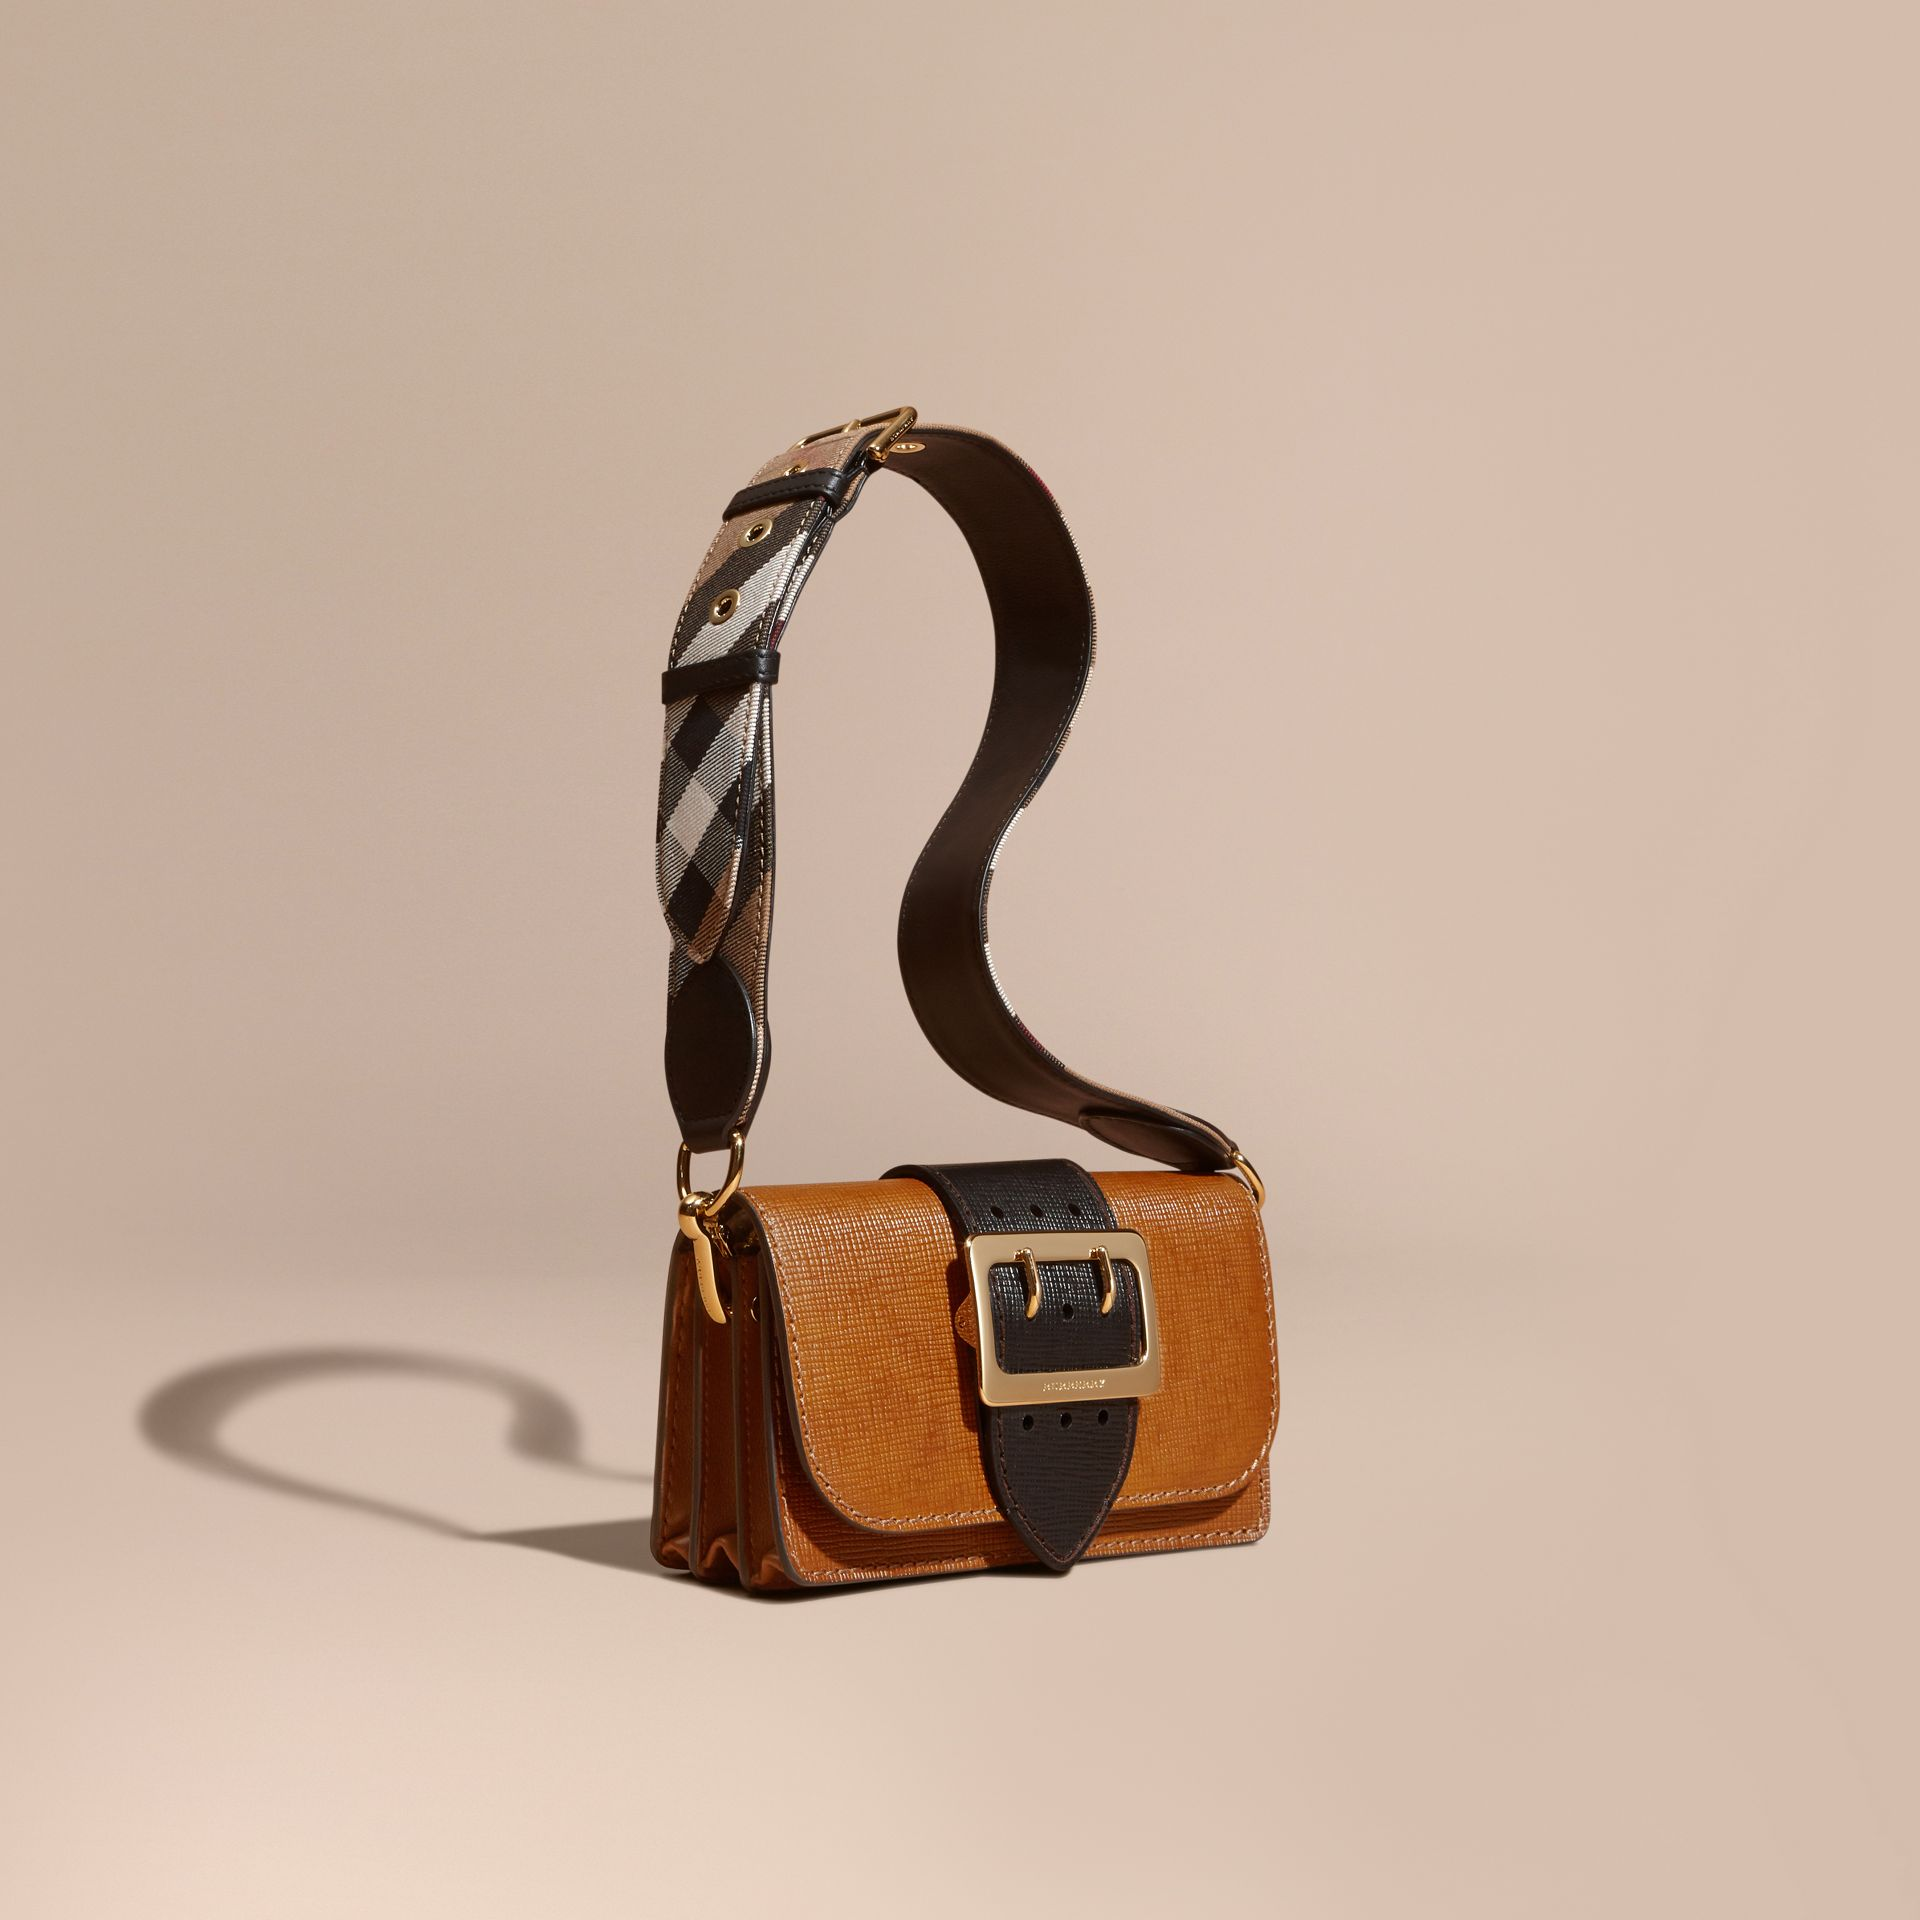 Tan / black The Small Buckle Bag in Grainy Leather - gallery image 1